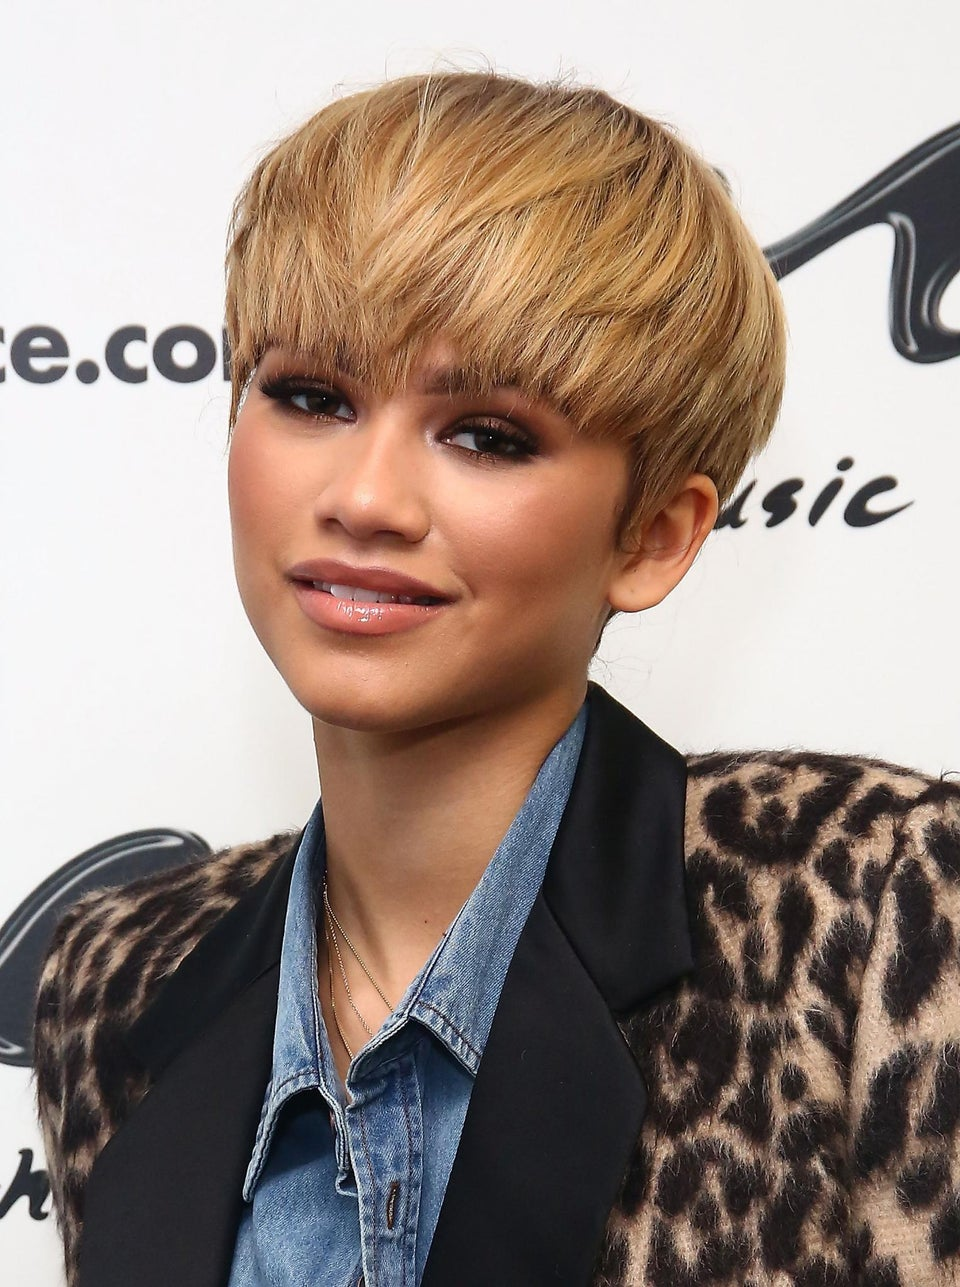 Zendaya's Hairstyle Confessions: 'There's Nothing I Wouldn't Try'